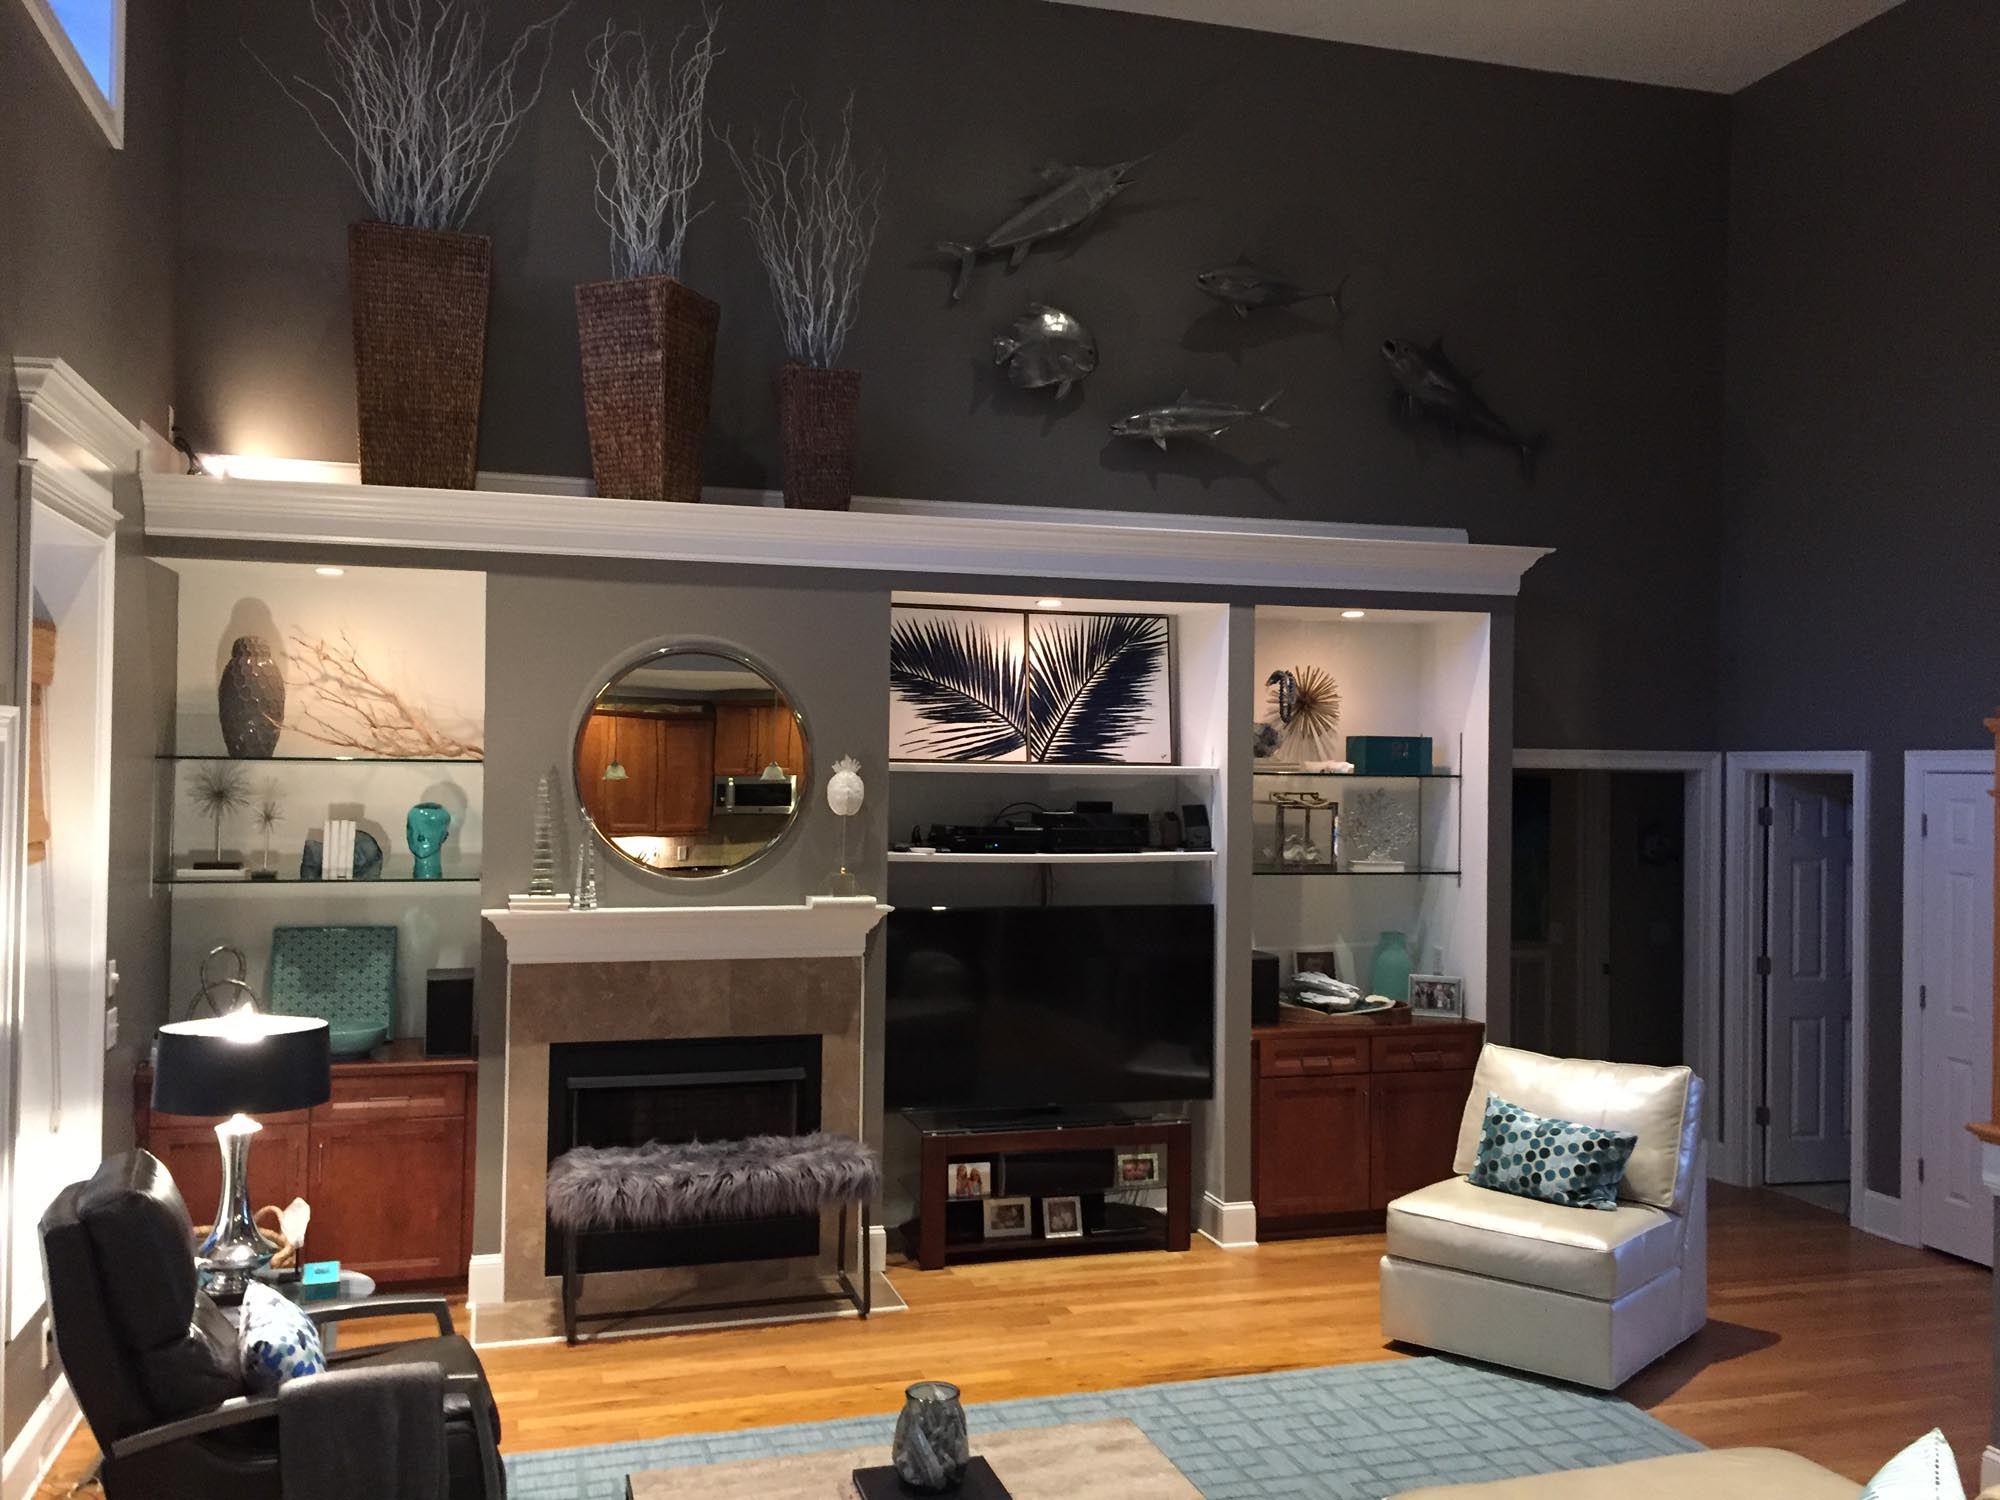 Book cases with tropical themed accessories and metal fish art hanging high on wall